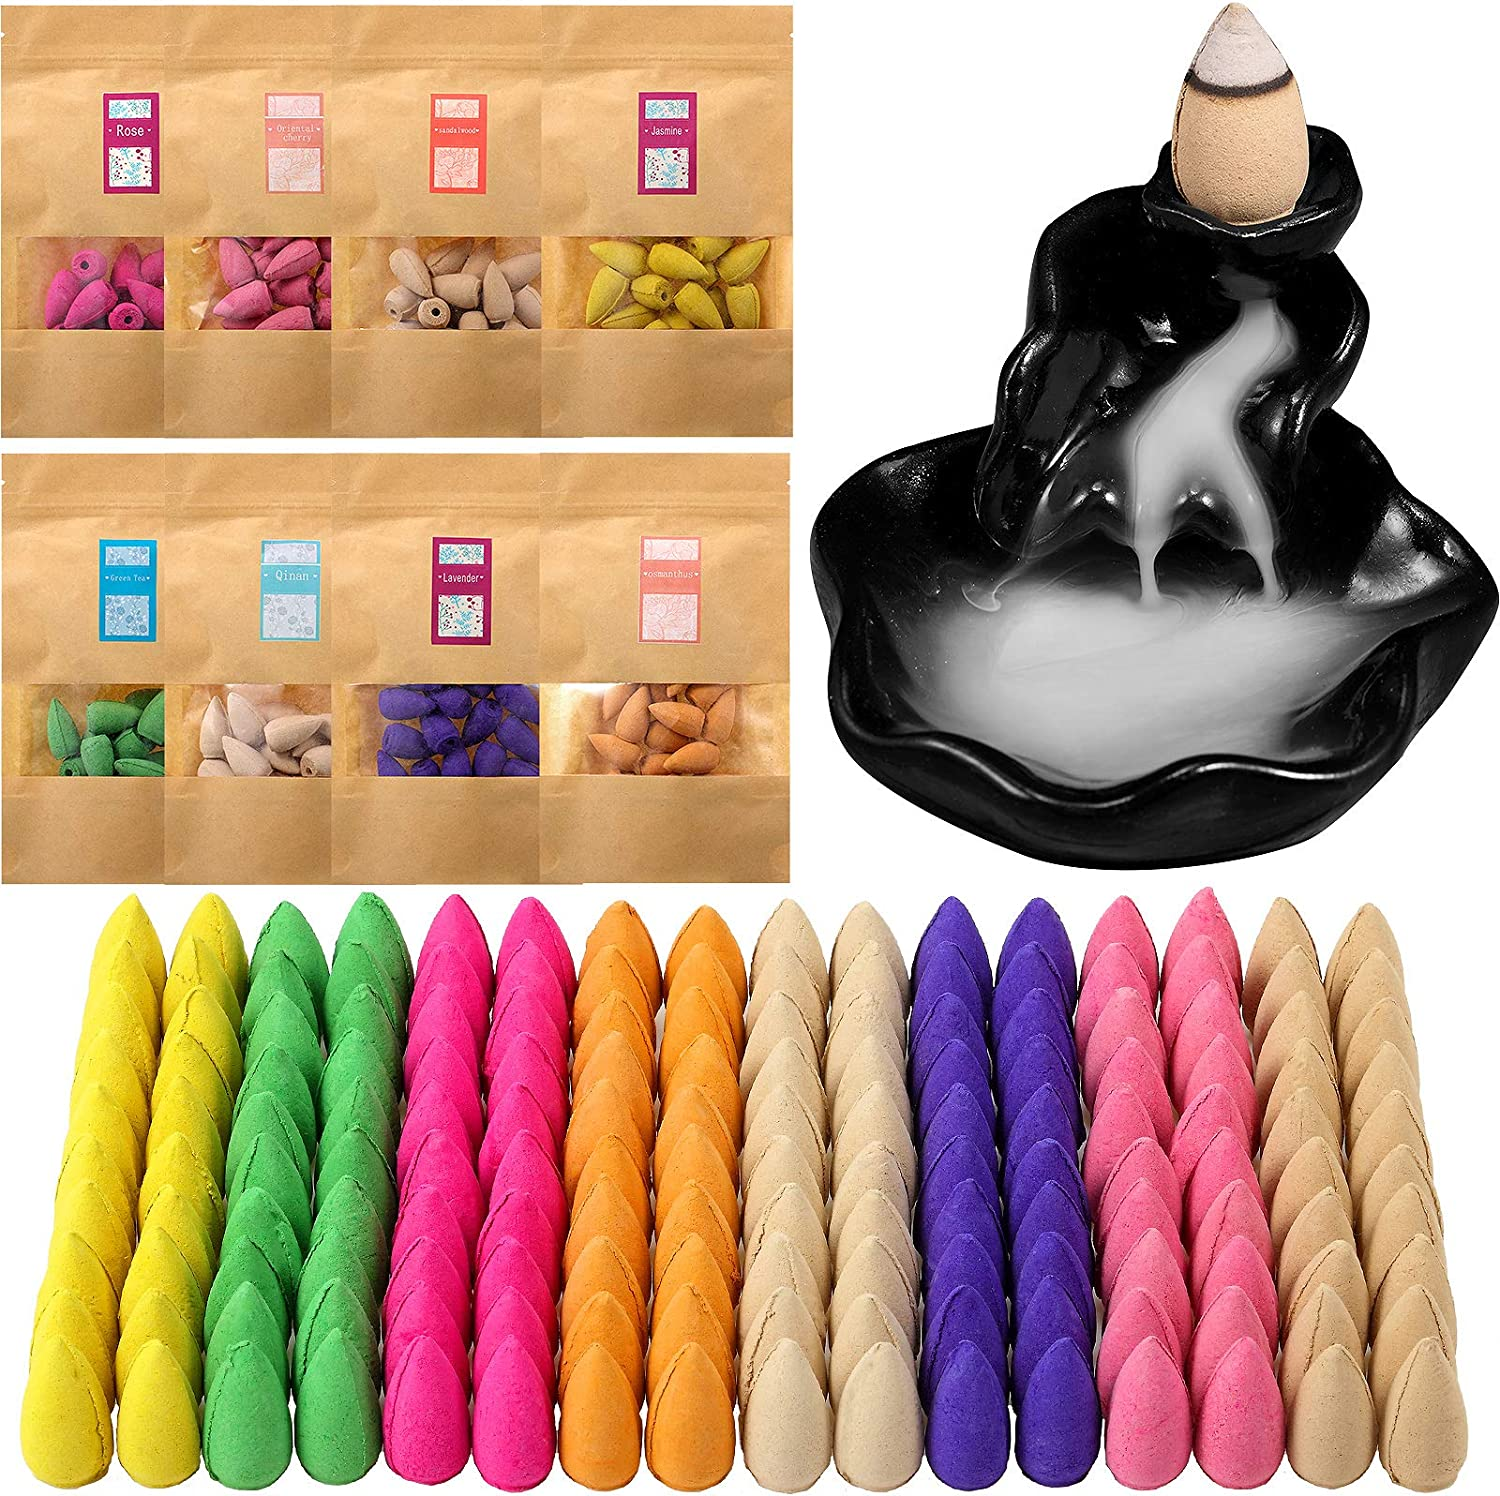 160 Pieces 8 Various Incense Backflow Incense Cones Scents Incense Burner with 1 Piece Ceramic Waterfall Incense Holder for Home Office Meditation Yoga Relaxation